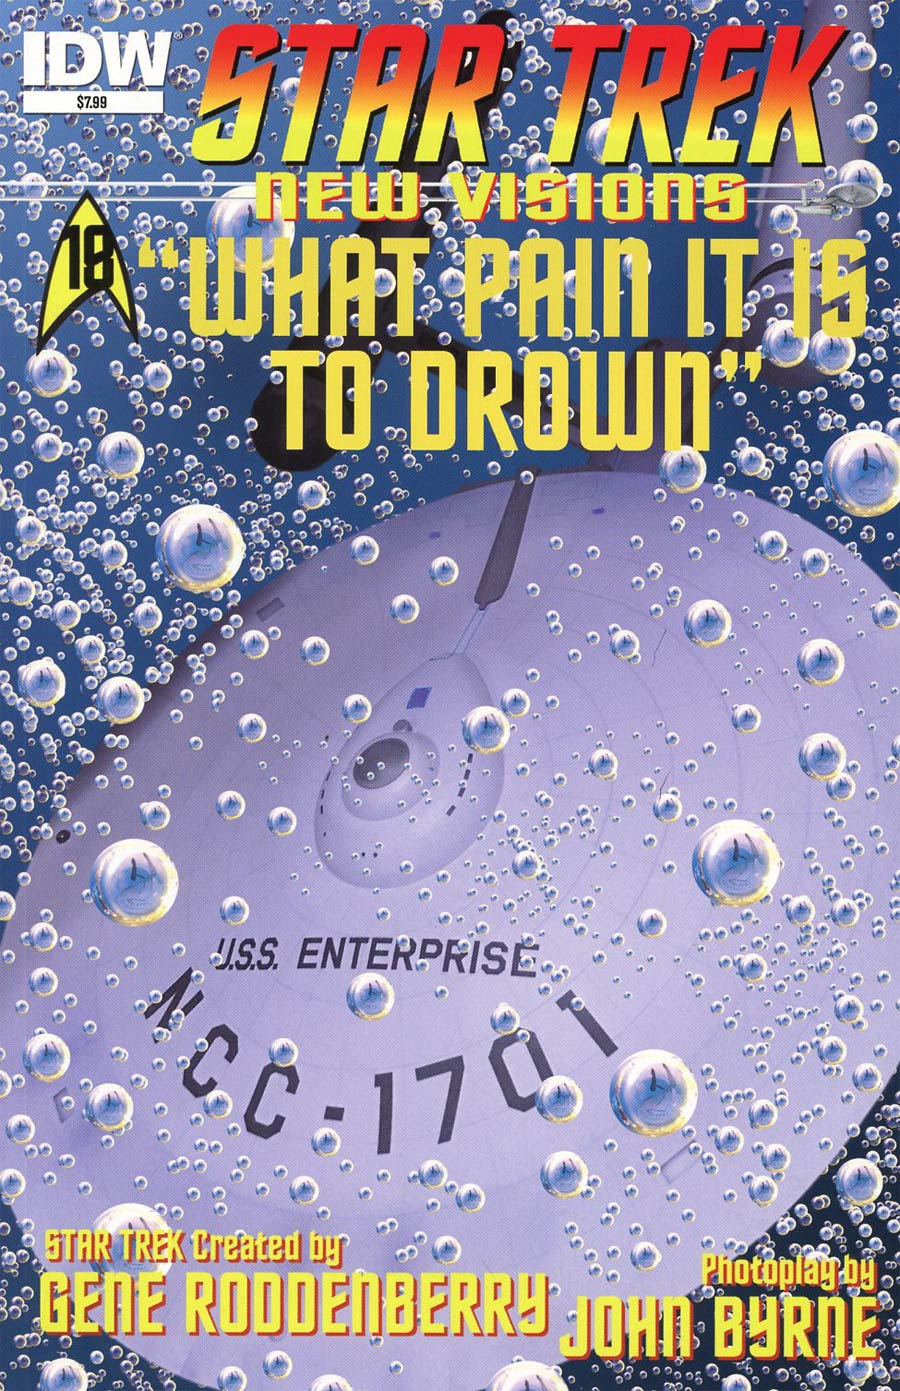 Star Trek New Visions #16 What Pain It Is To Drown